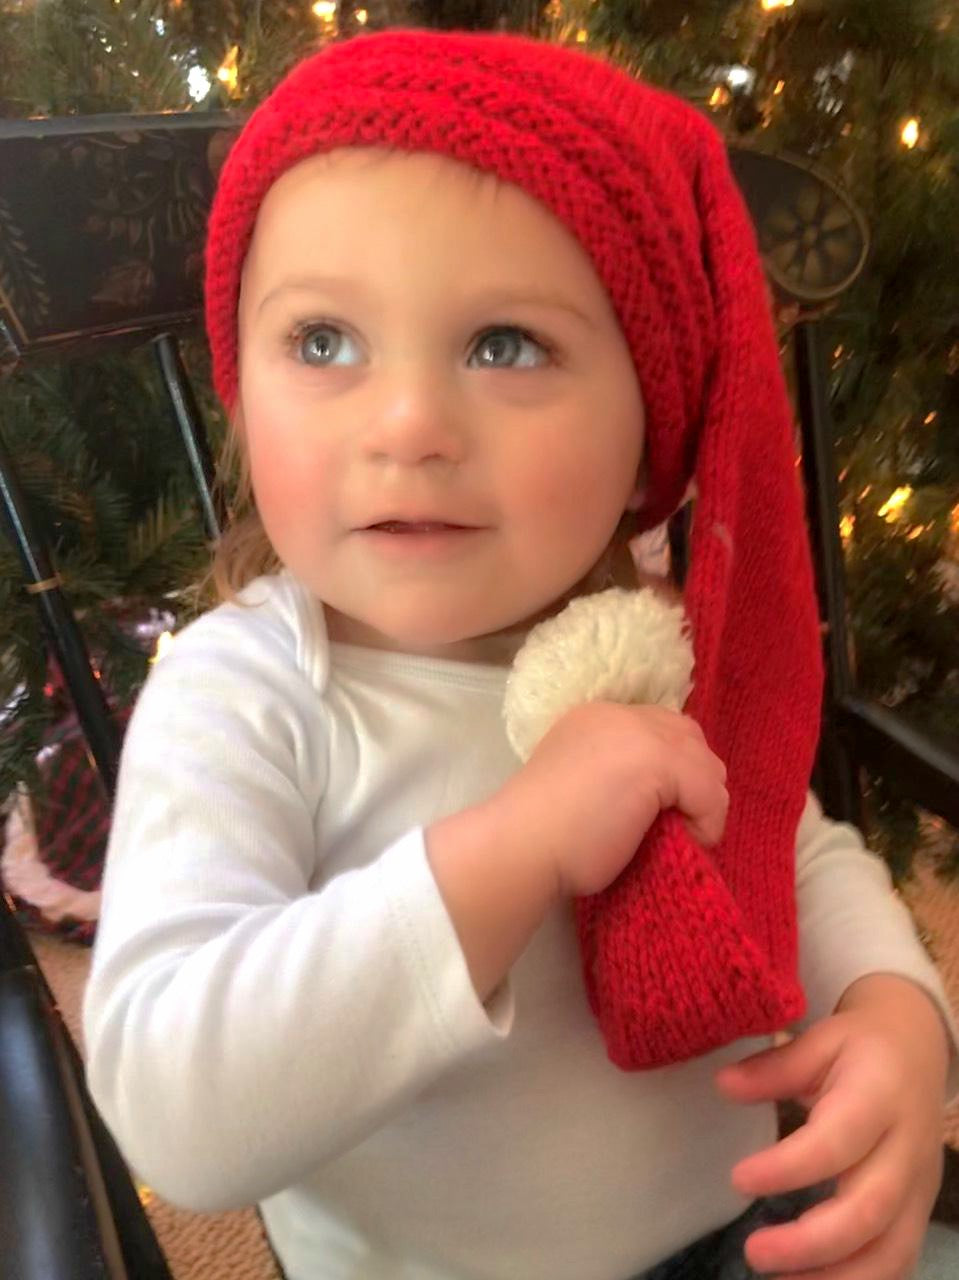 Baby Stocking Cap - Designed by Laura L Esperance – Patterns By Kraemer c9f871a921a